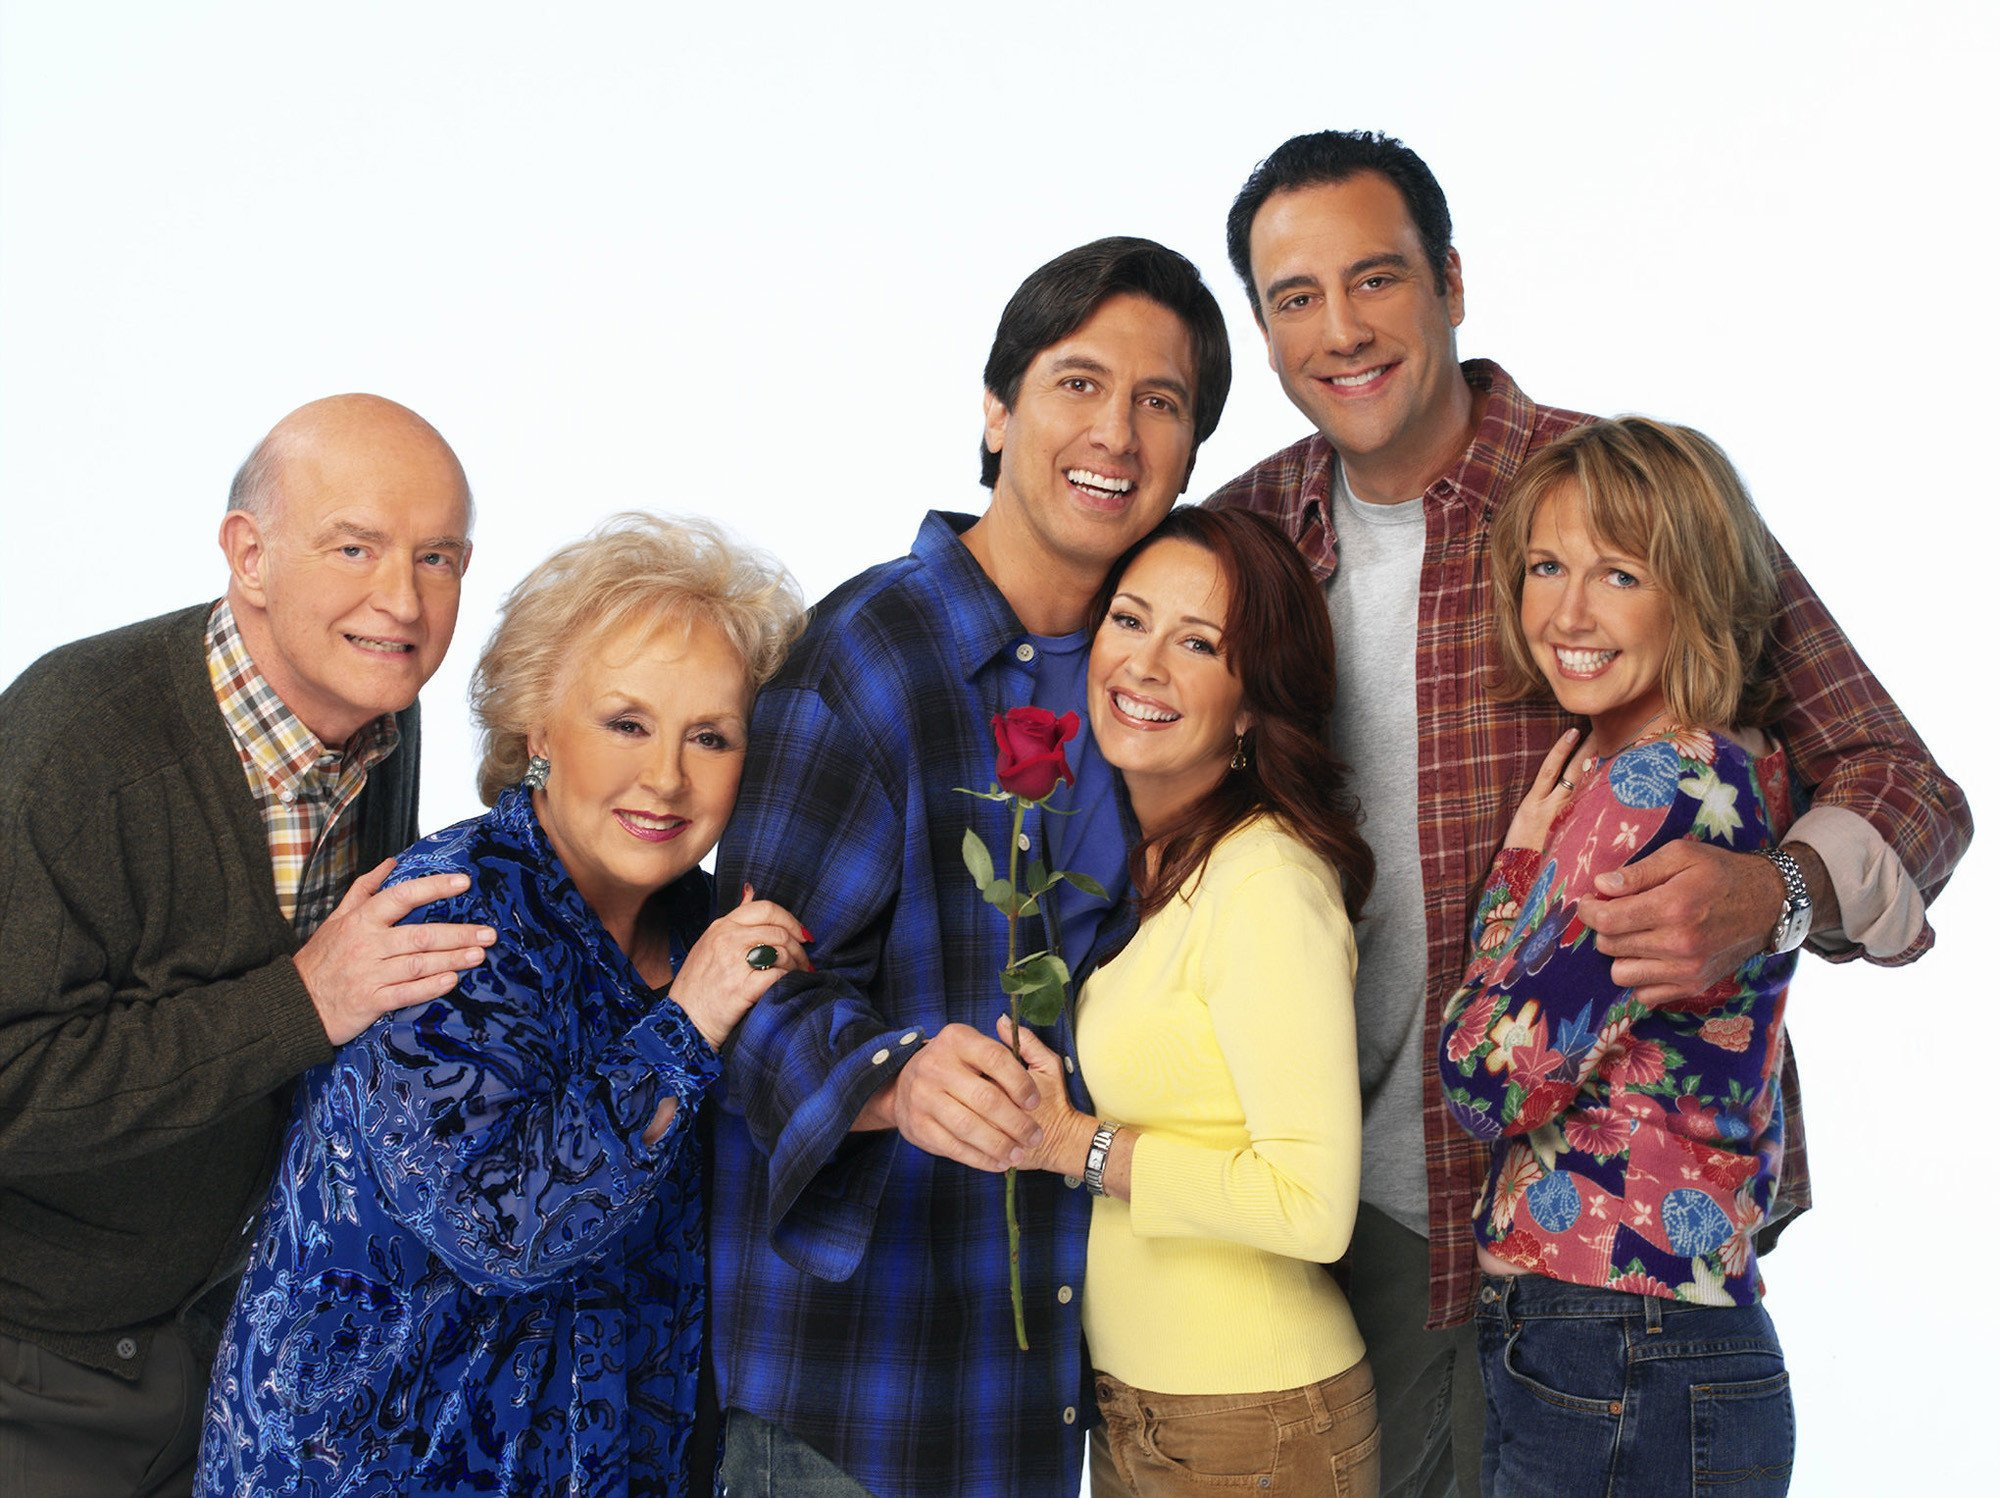 an analysis of the television sitcom everybody loves raymond Watch everybody loves raymond online free streaming hd, all episodes everybody loves raymond (1996) free streaming full episode online stream tv series online hd streaming everybody loves raymond episode streaming free qwermovies.